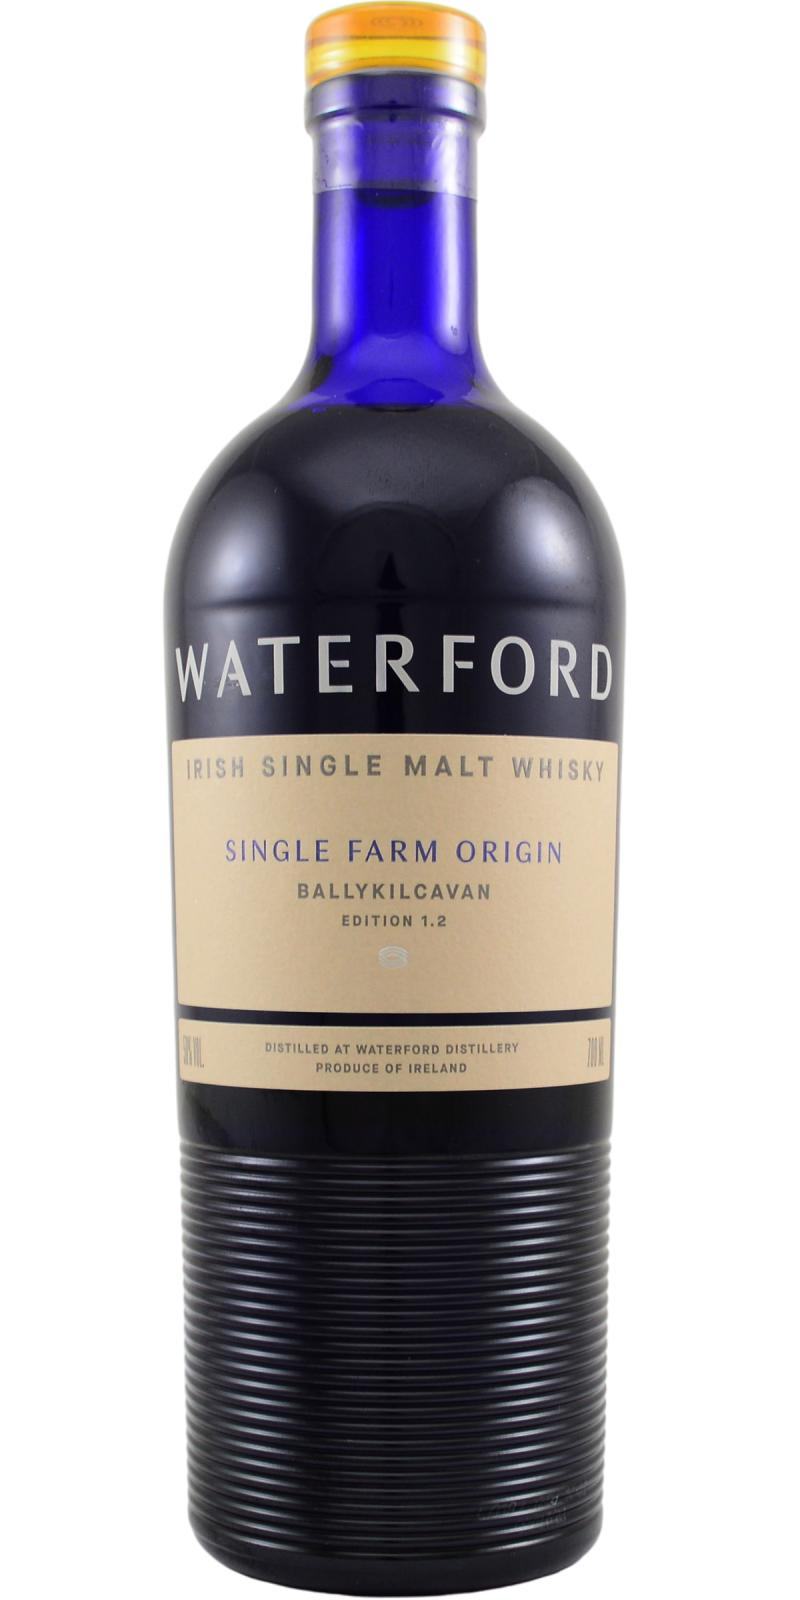 Waterford Ballykilcavan: Edition 1.2